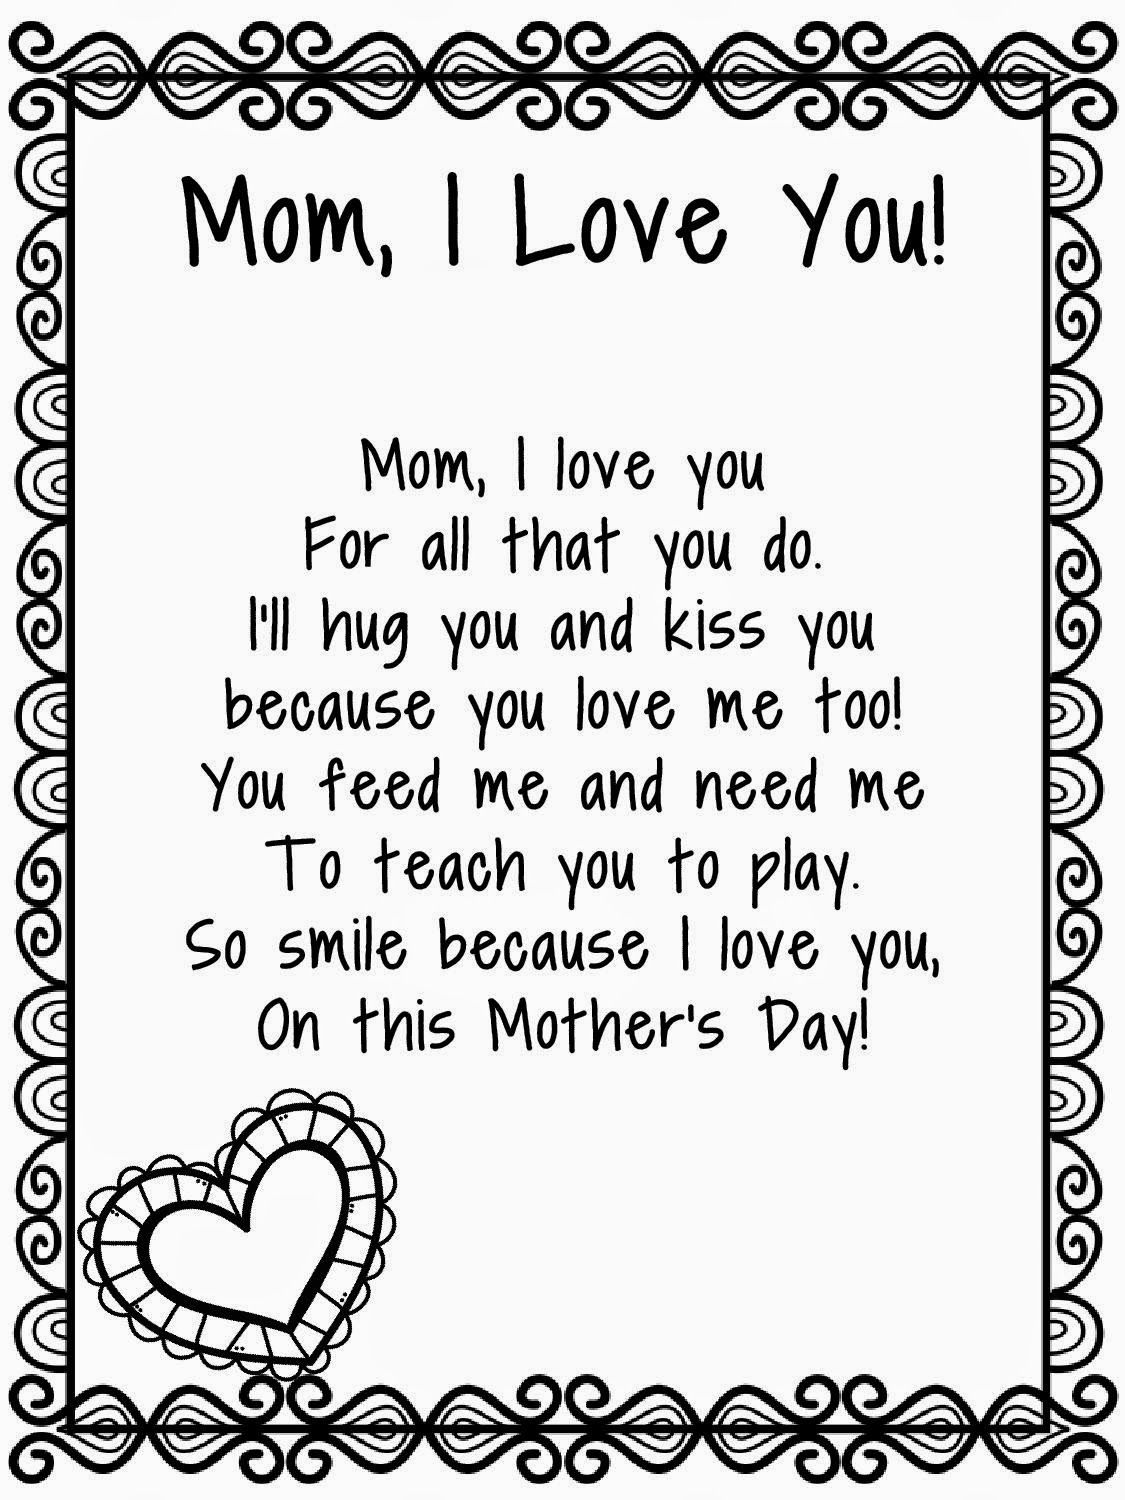 Mothers Day Poems For Kids Mothers Day Poems For Kids